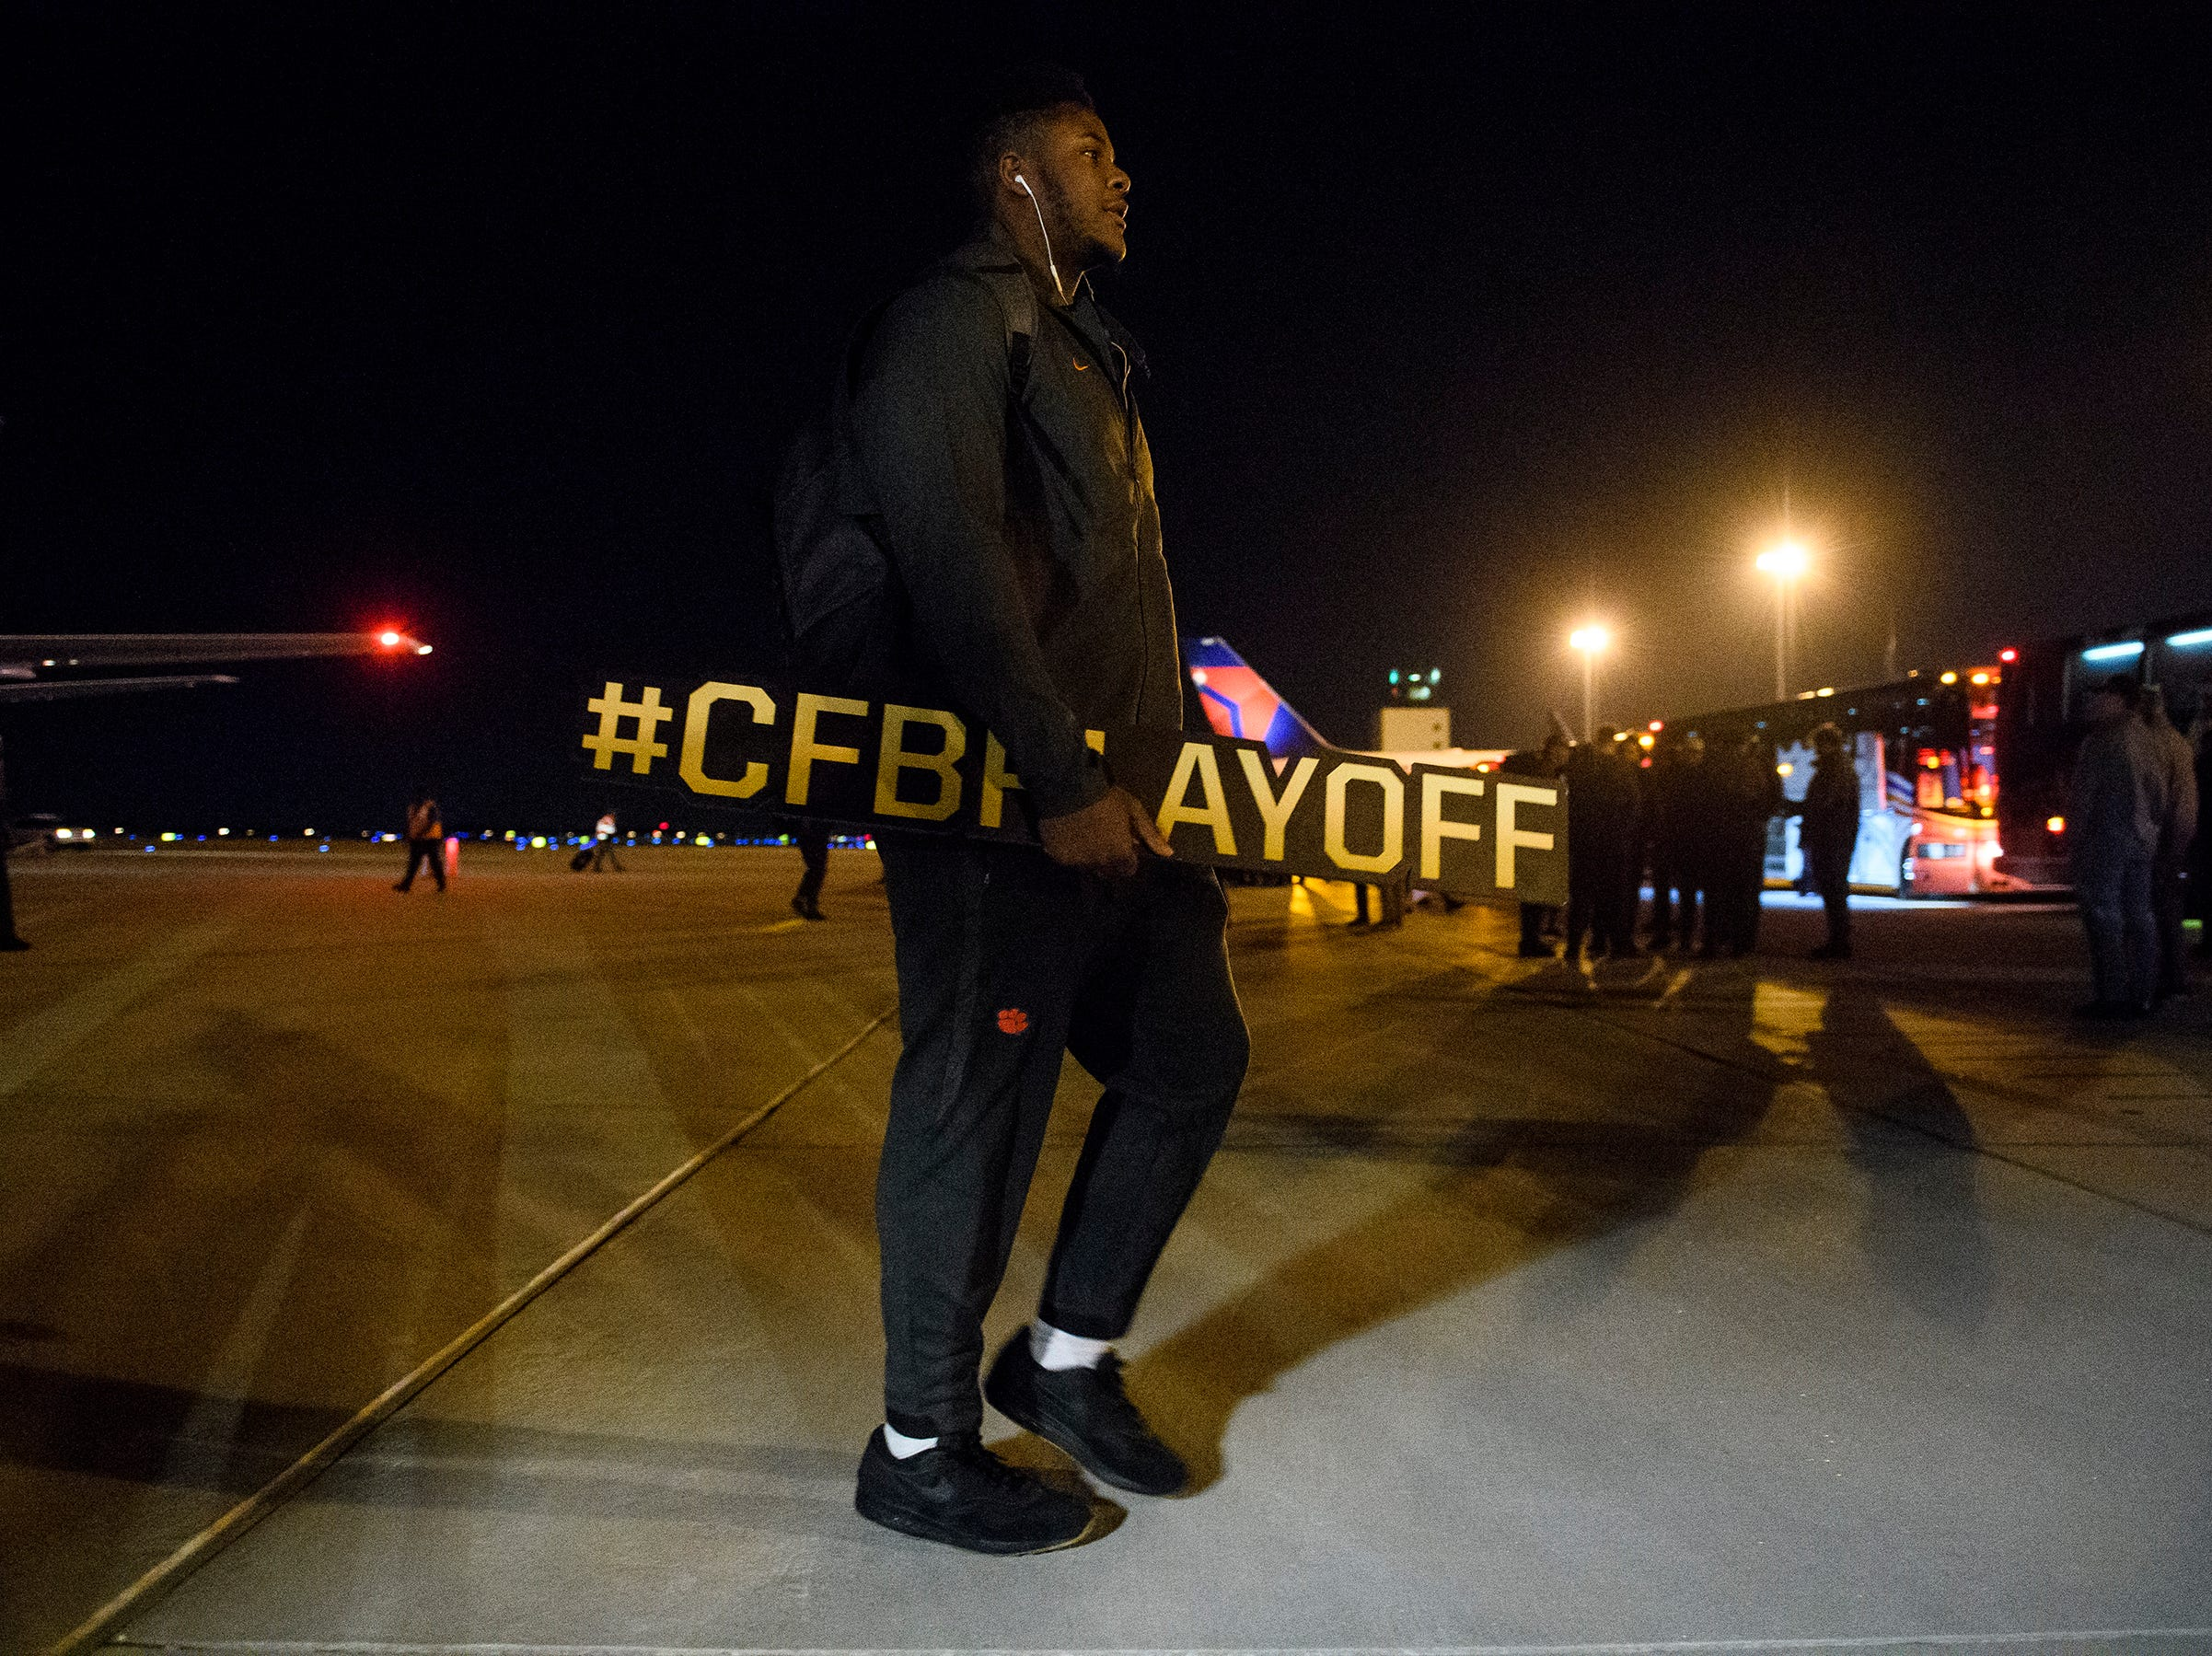 The Clemson Tigers arrive at Greenville Spartanburg International Airport on Tuesday, Jan. 8, 2019 after their National Champion game against Alabama.